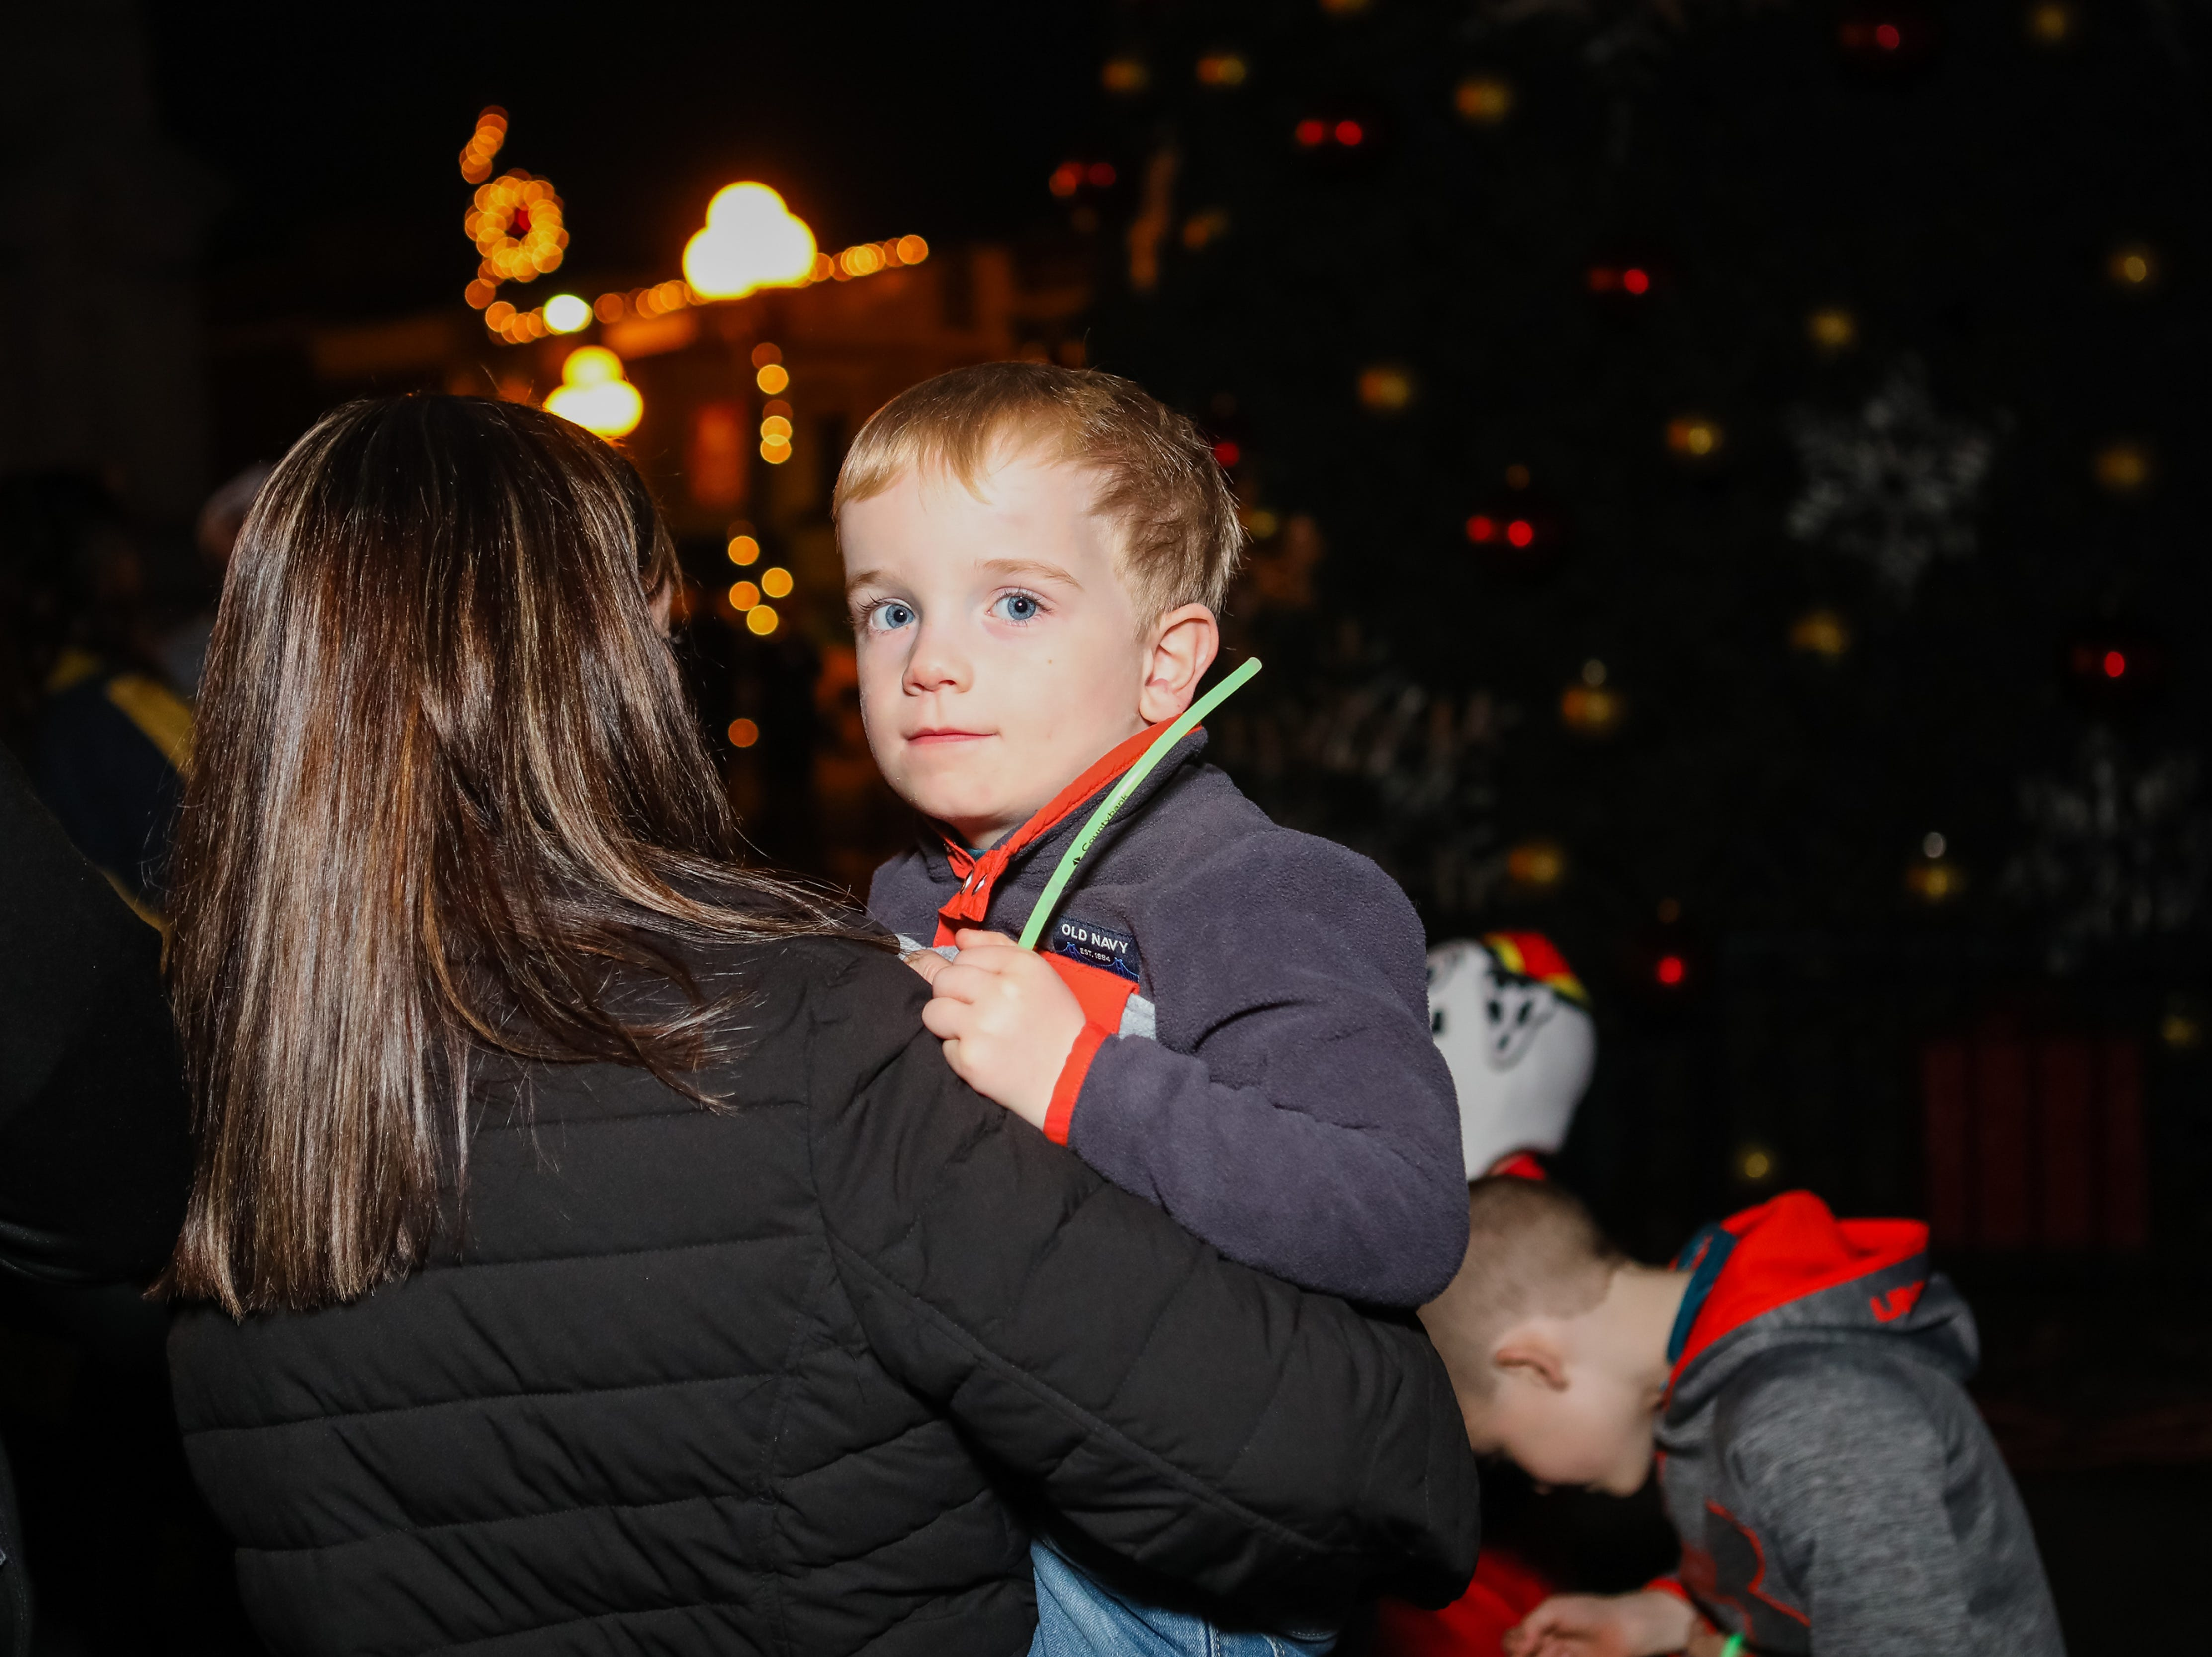 Three year old Chase Chapman plays with his glow stick at the Piedmont Natural Gas Holiday Walk and Christmas Tree Lighting in downtown Anderson